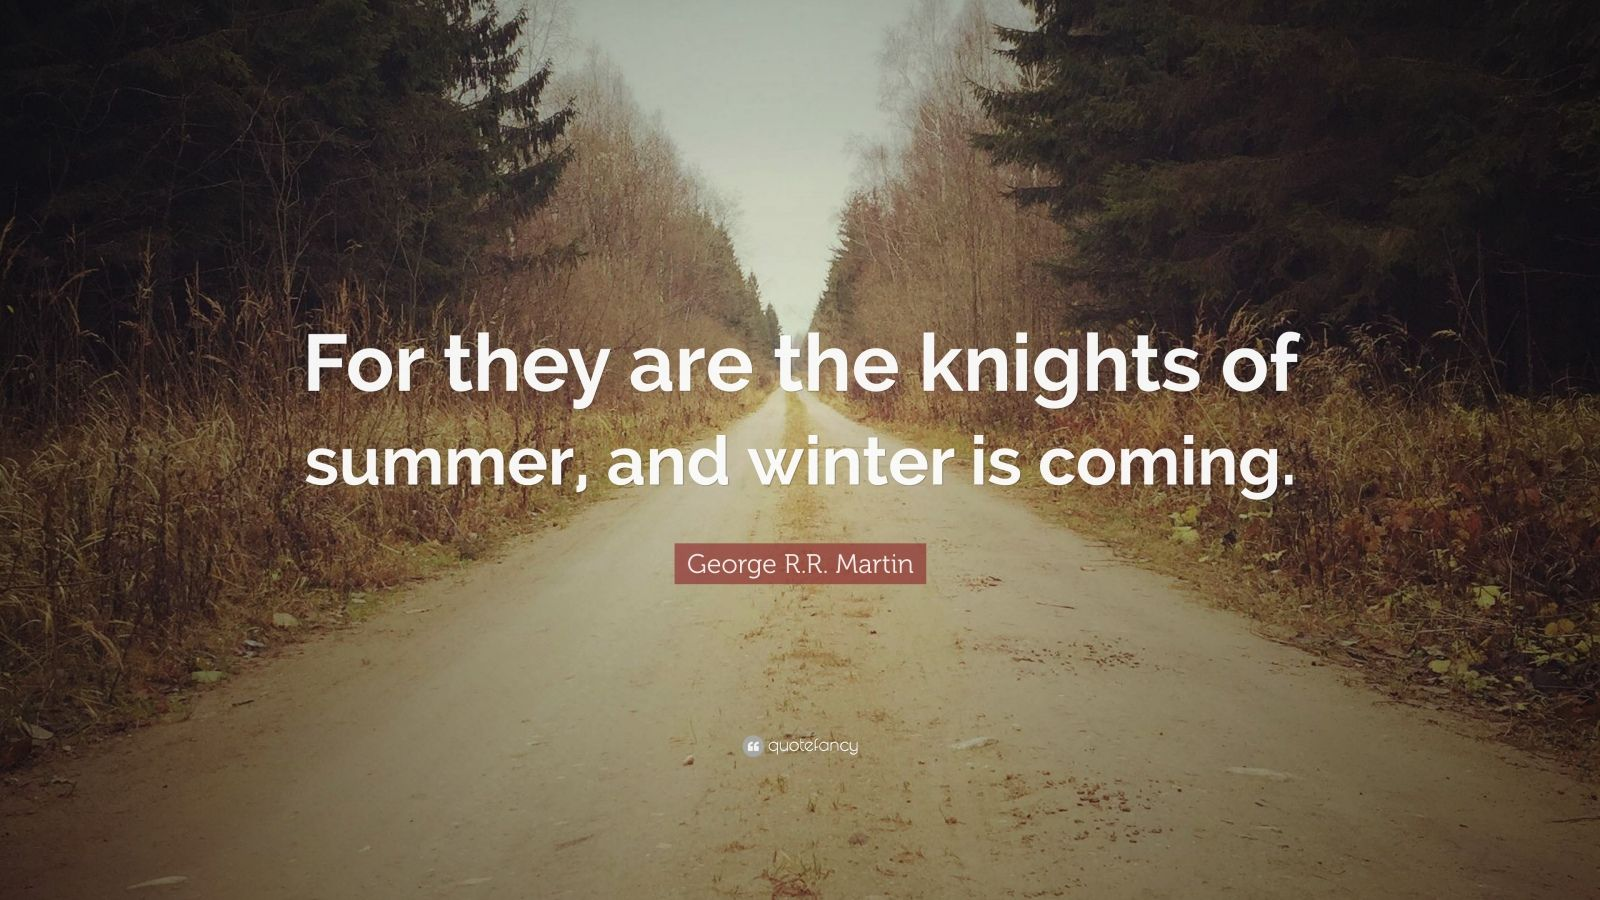 """George R.R. Martin Quote: """"For they are the knights of summer, and winter is coming."""""""